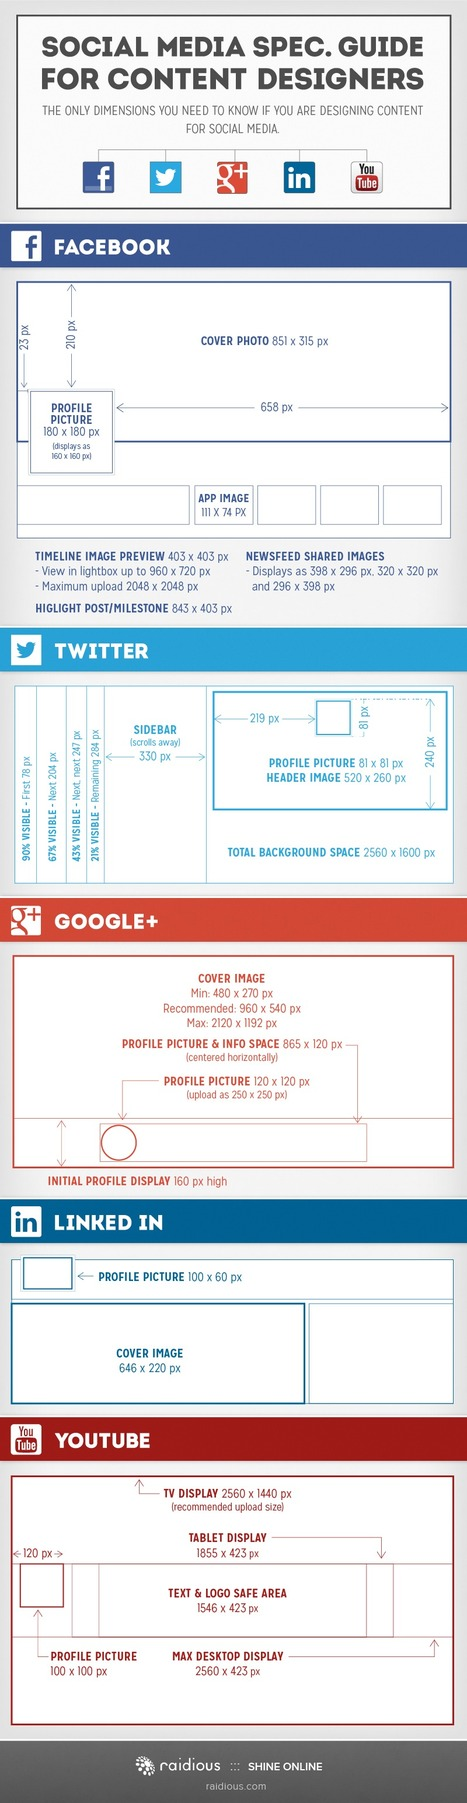 A helpful image sizing guide for social media profiles | Webdesign & Graphics | Scoop.it